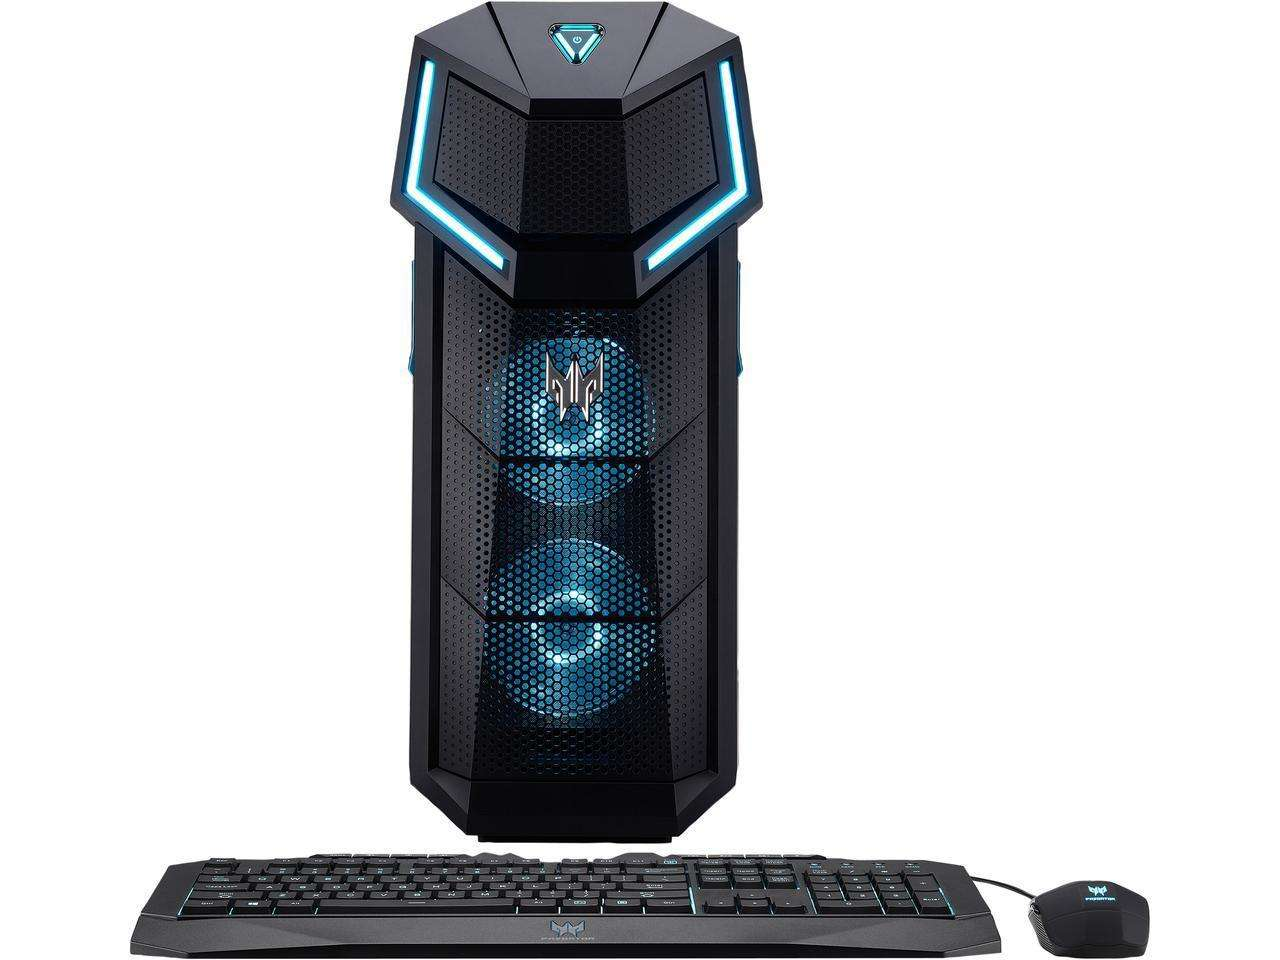 922245d5576 Hot Hot Hot! Top 10 Black Friday 2018 Gaming PC Deals Are Here!